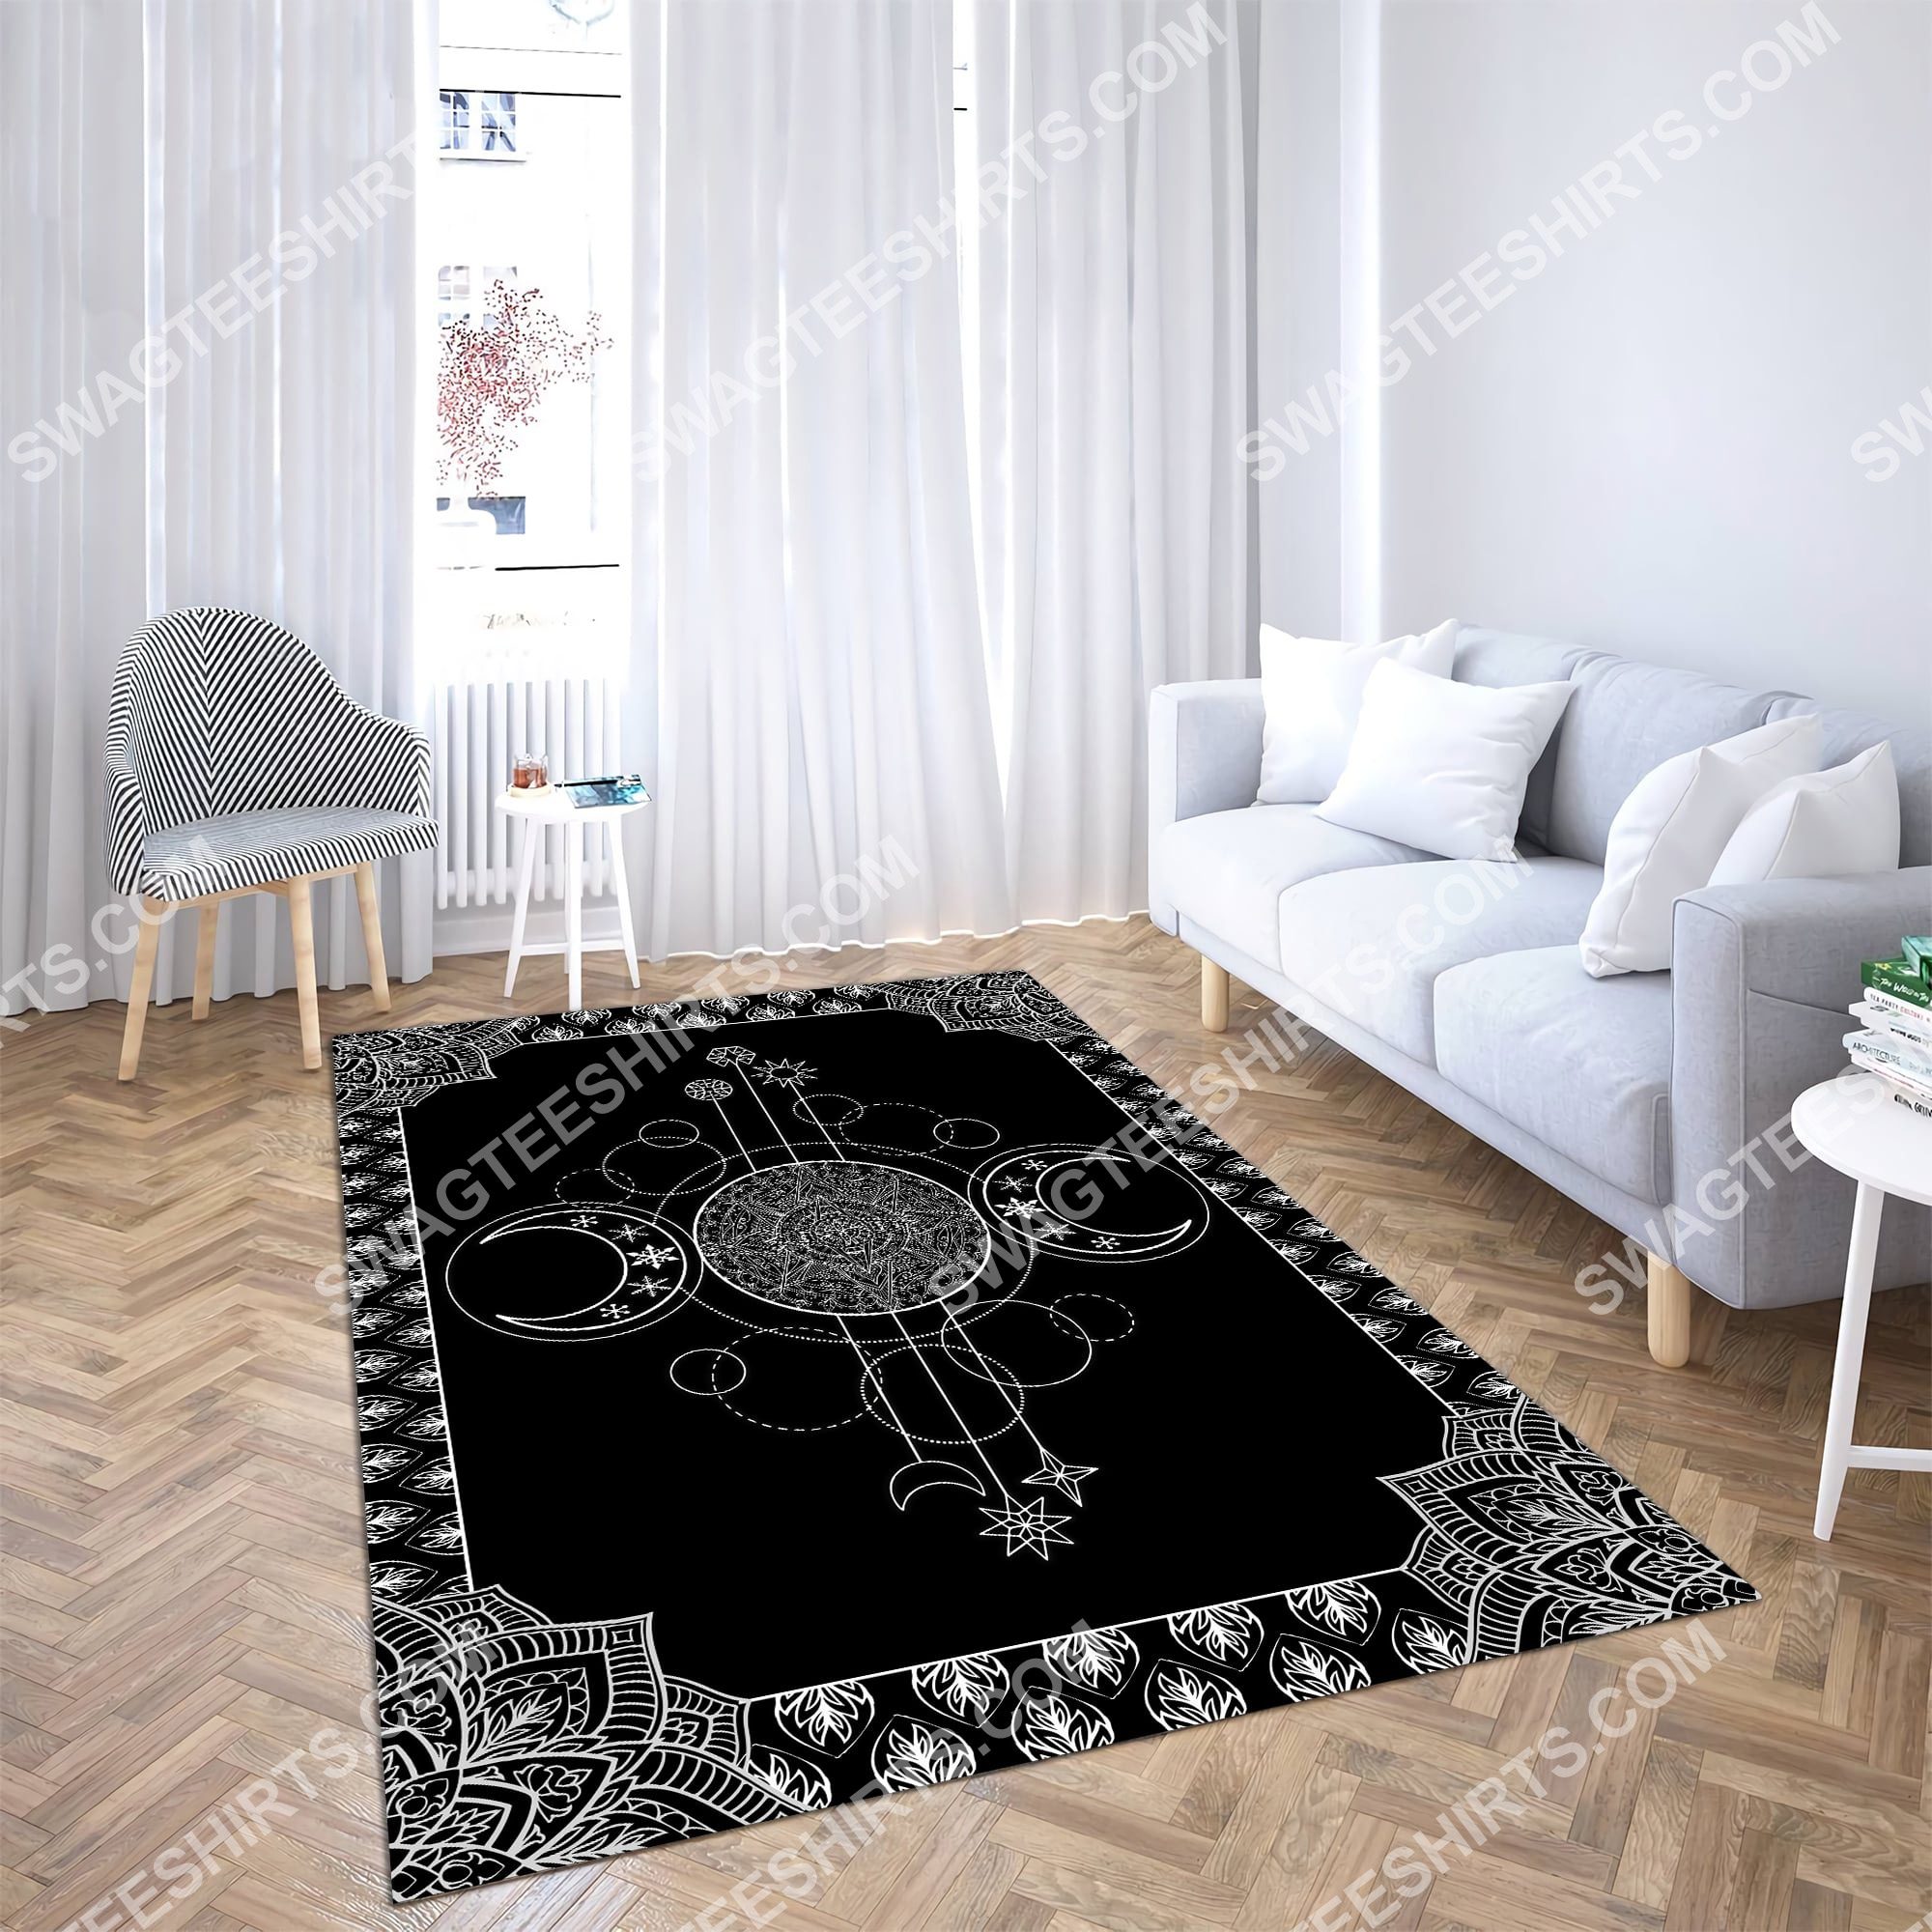 the wiccan art all over printed rug 3(1)